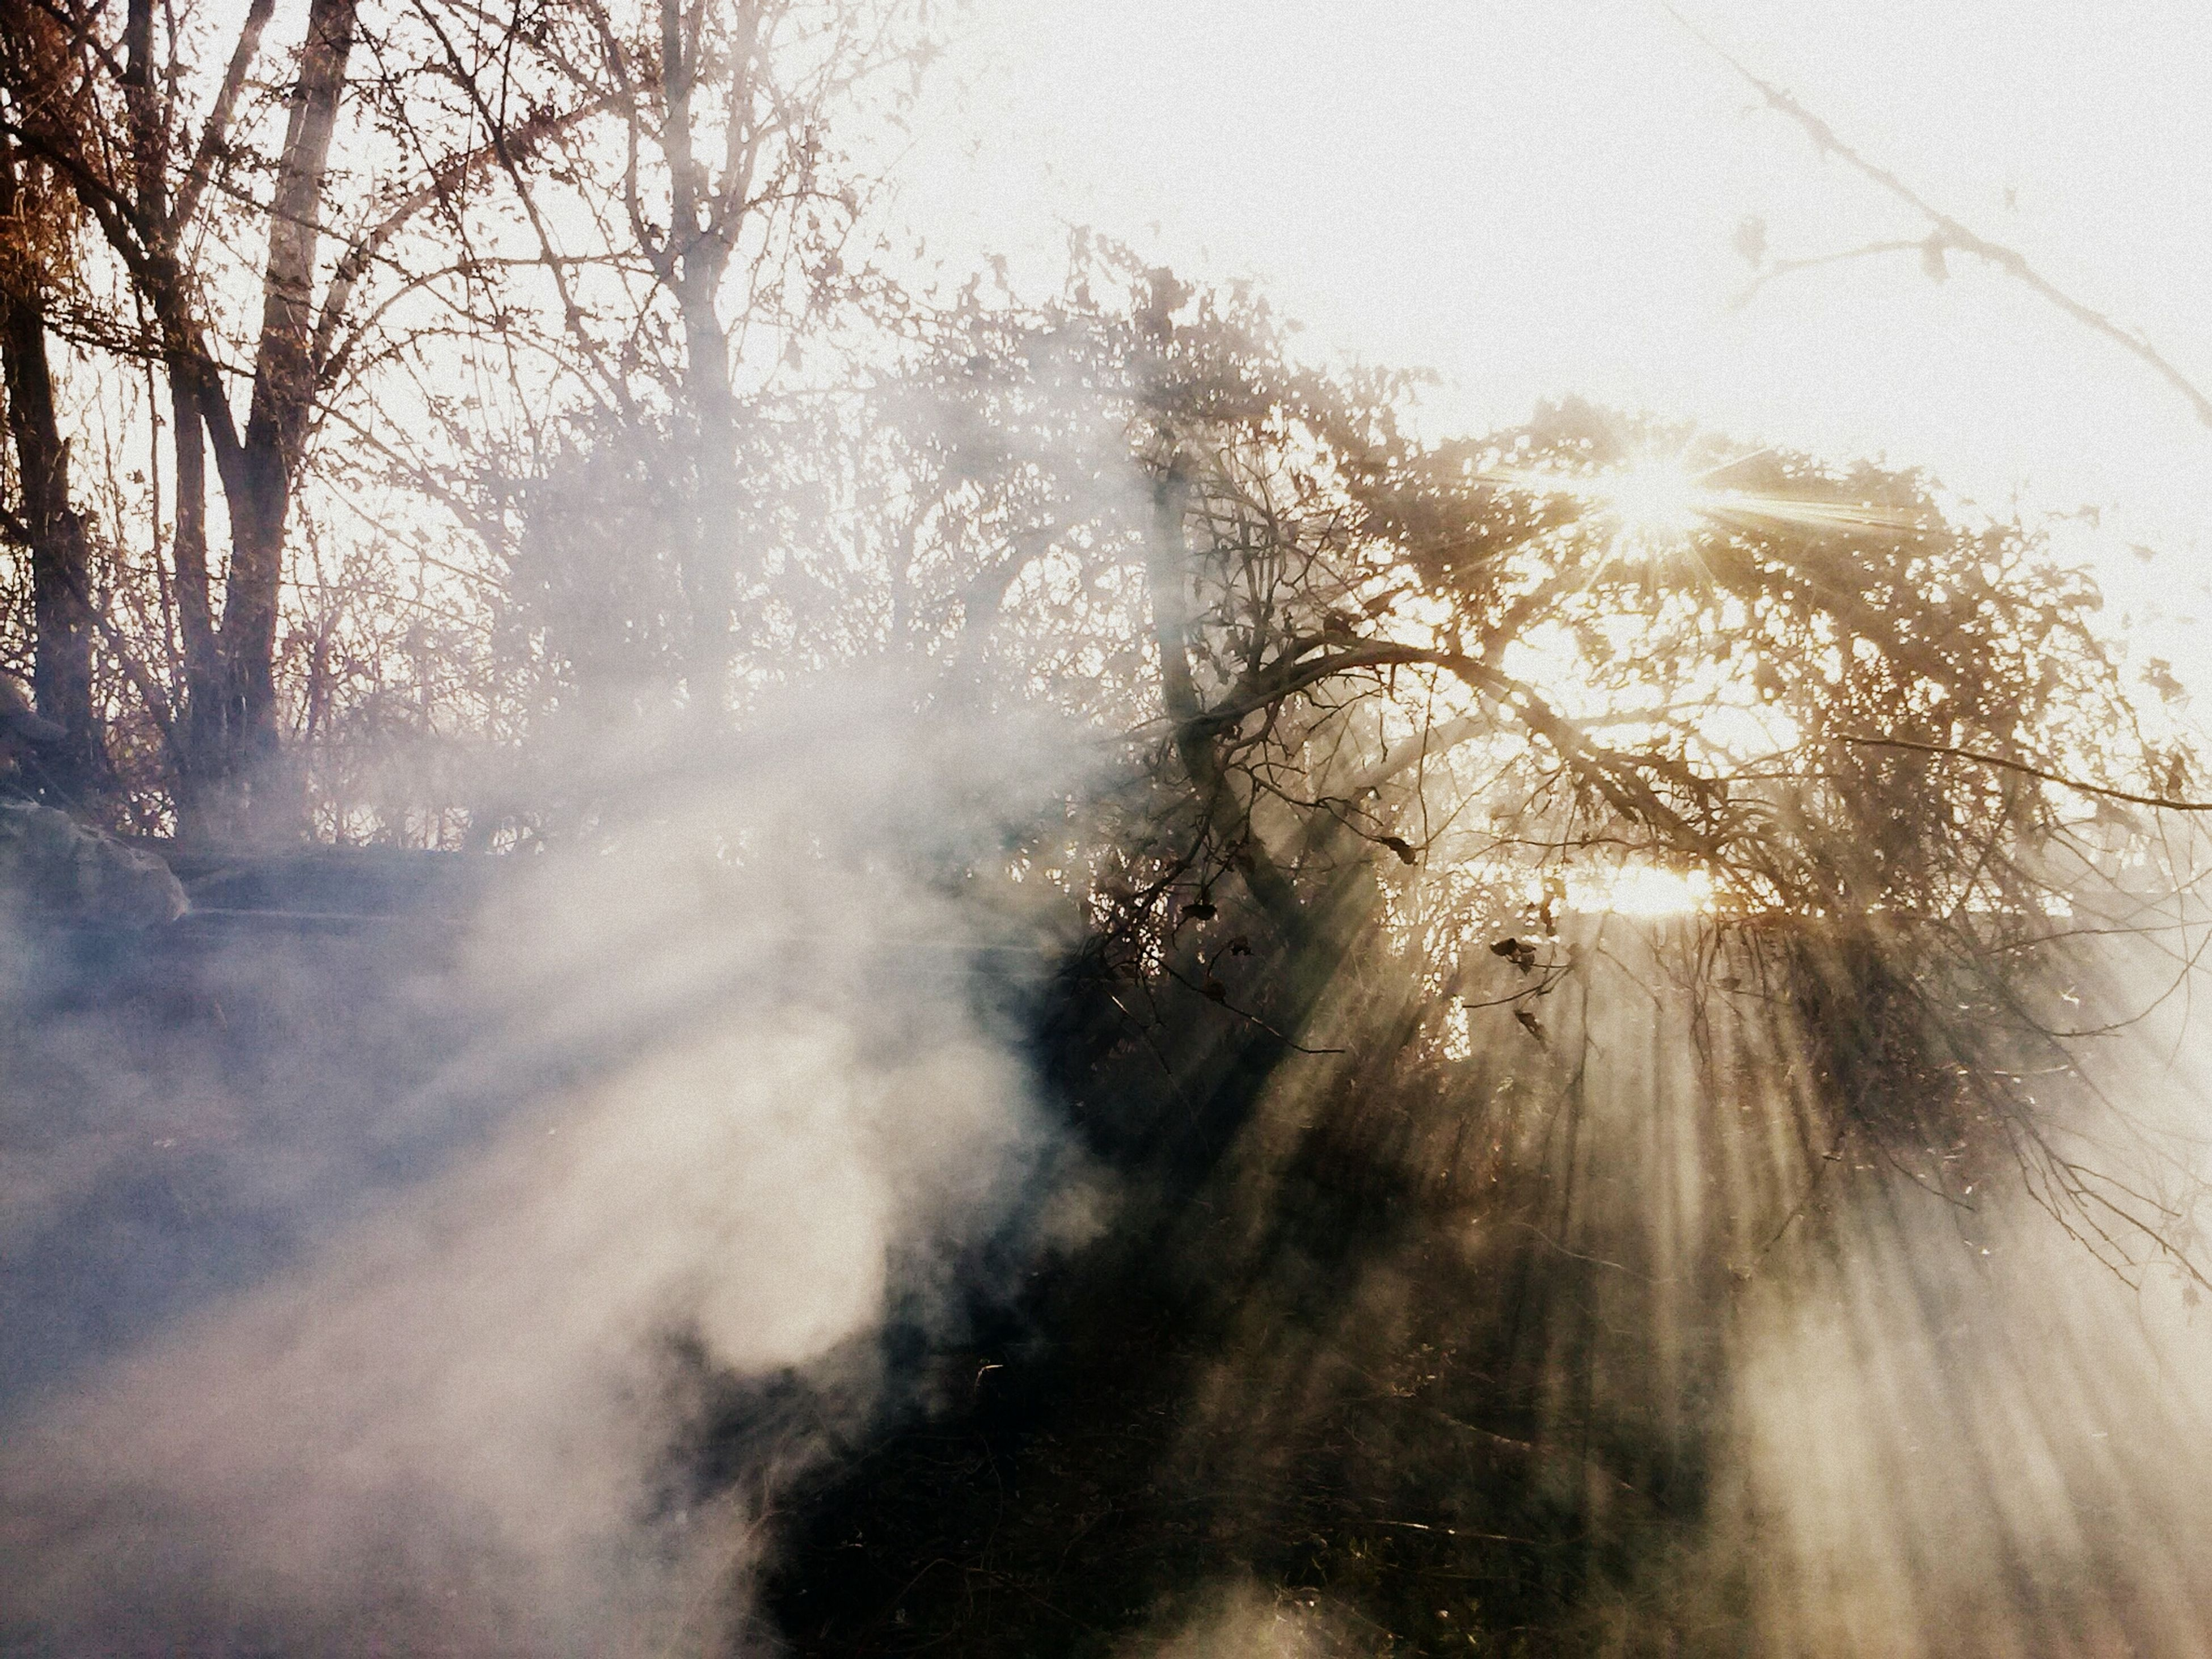 sun, tree, sunbeam, sunlight, lens flare, tranquility, tranquil scene, nature, beauty in nature, silhouette, scenics, bright, back lit, fog, branch, forest, growth, sky, sunny, weather